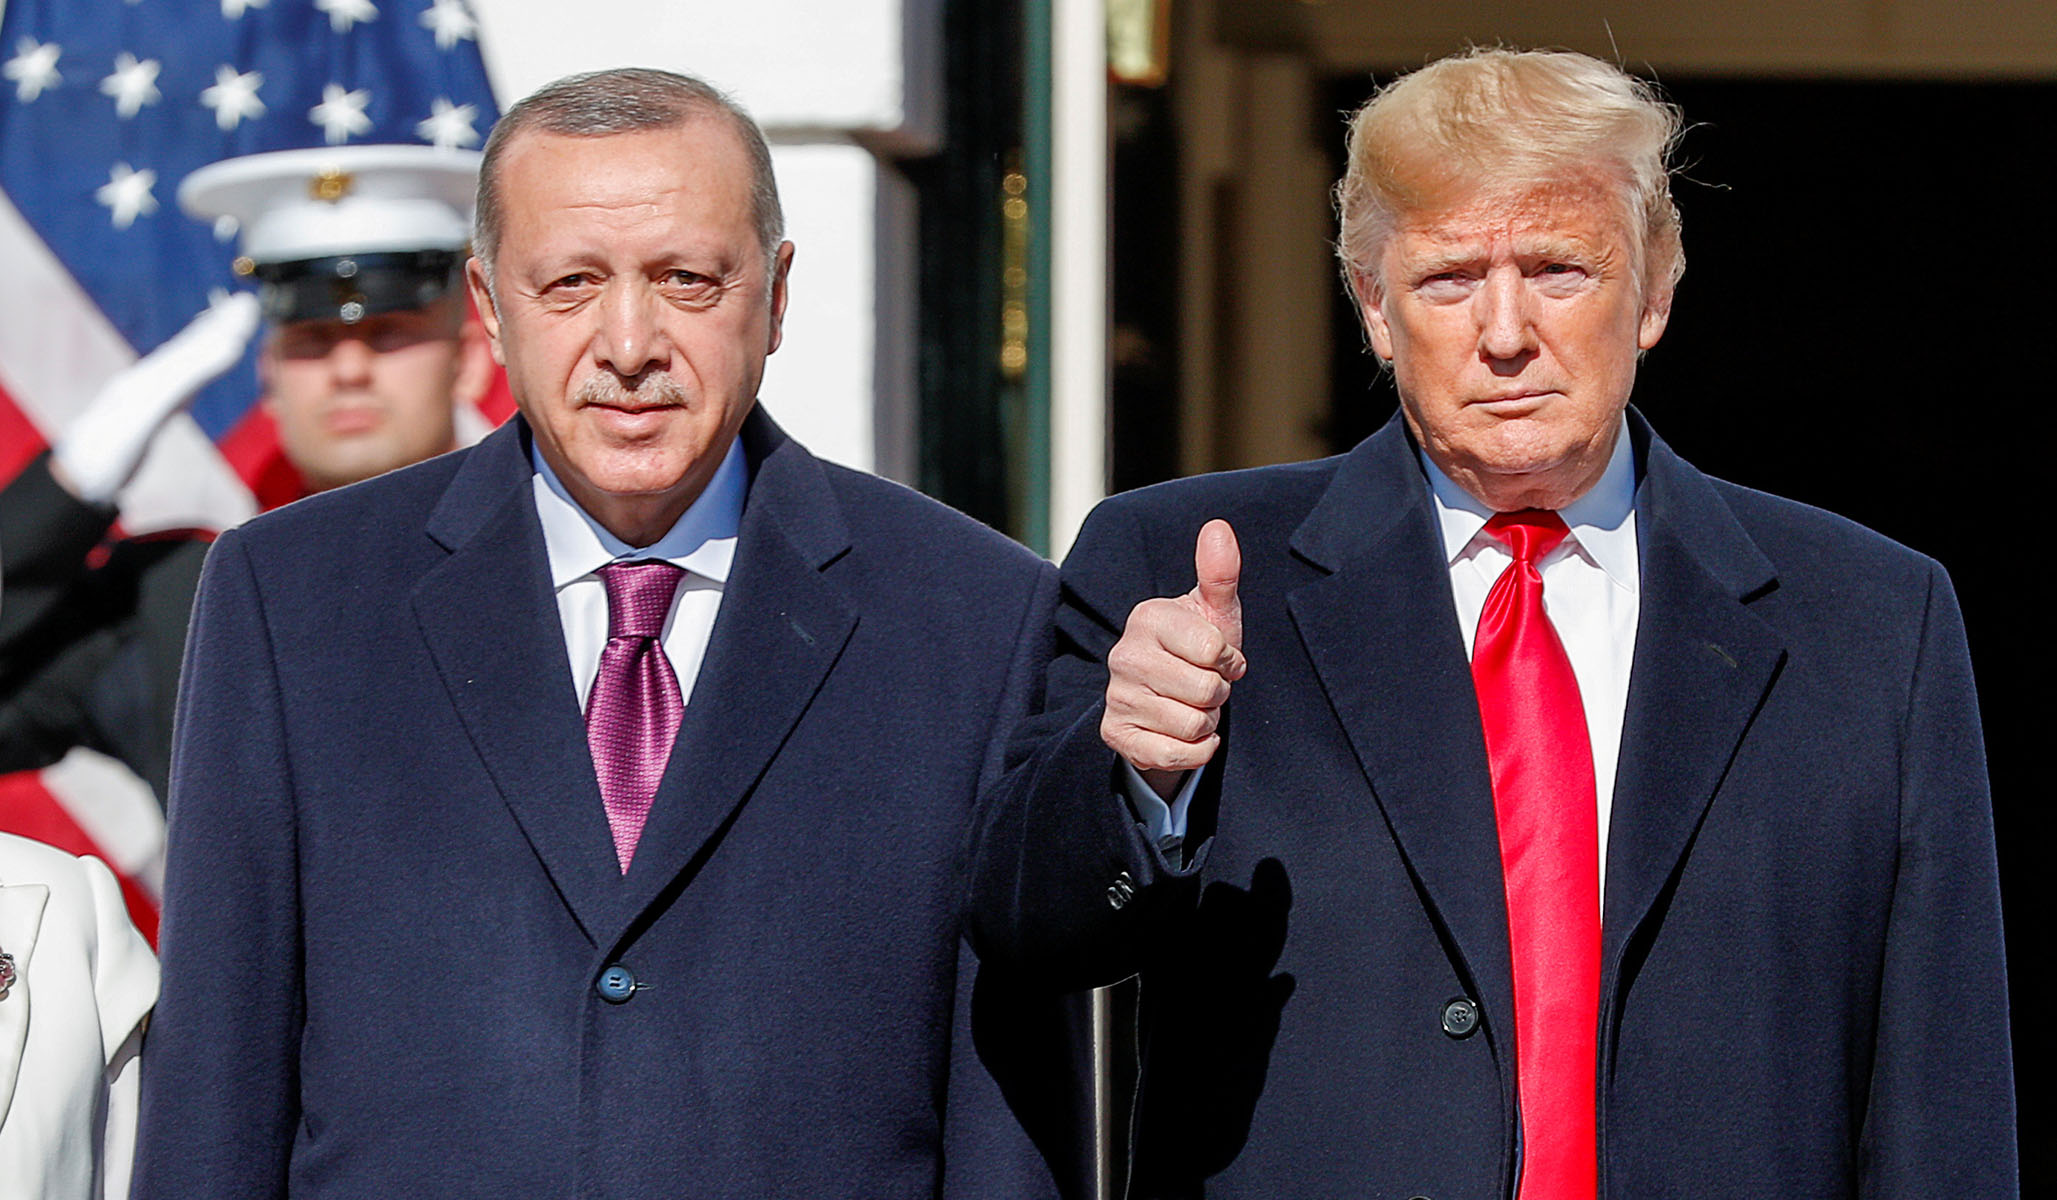 Trump Says U.S. Will Expand Trade Relationship with Turkey 'Very Significantly'